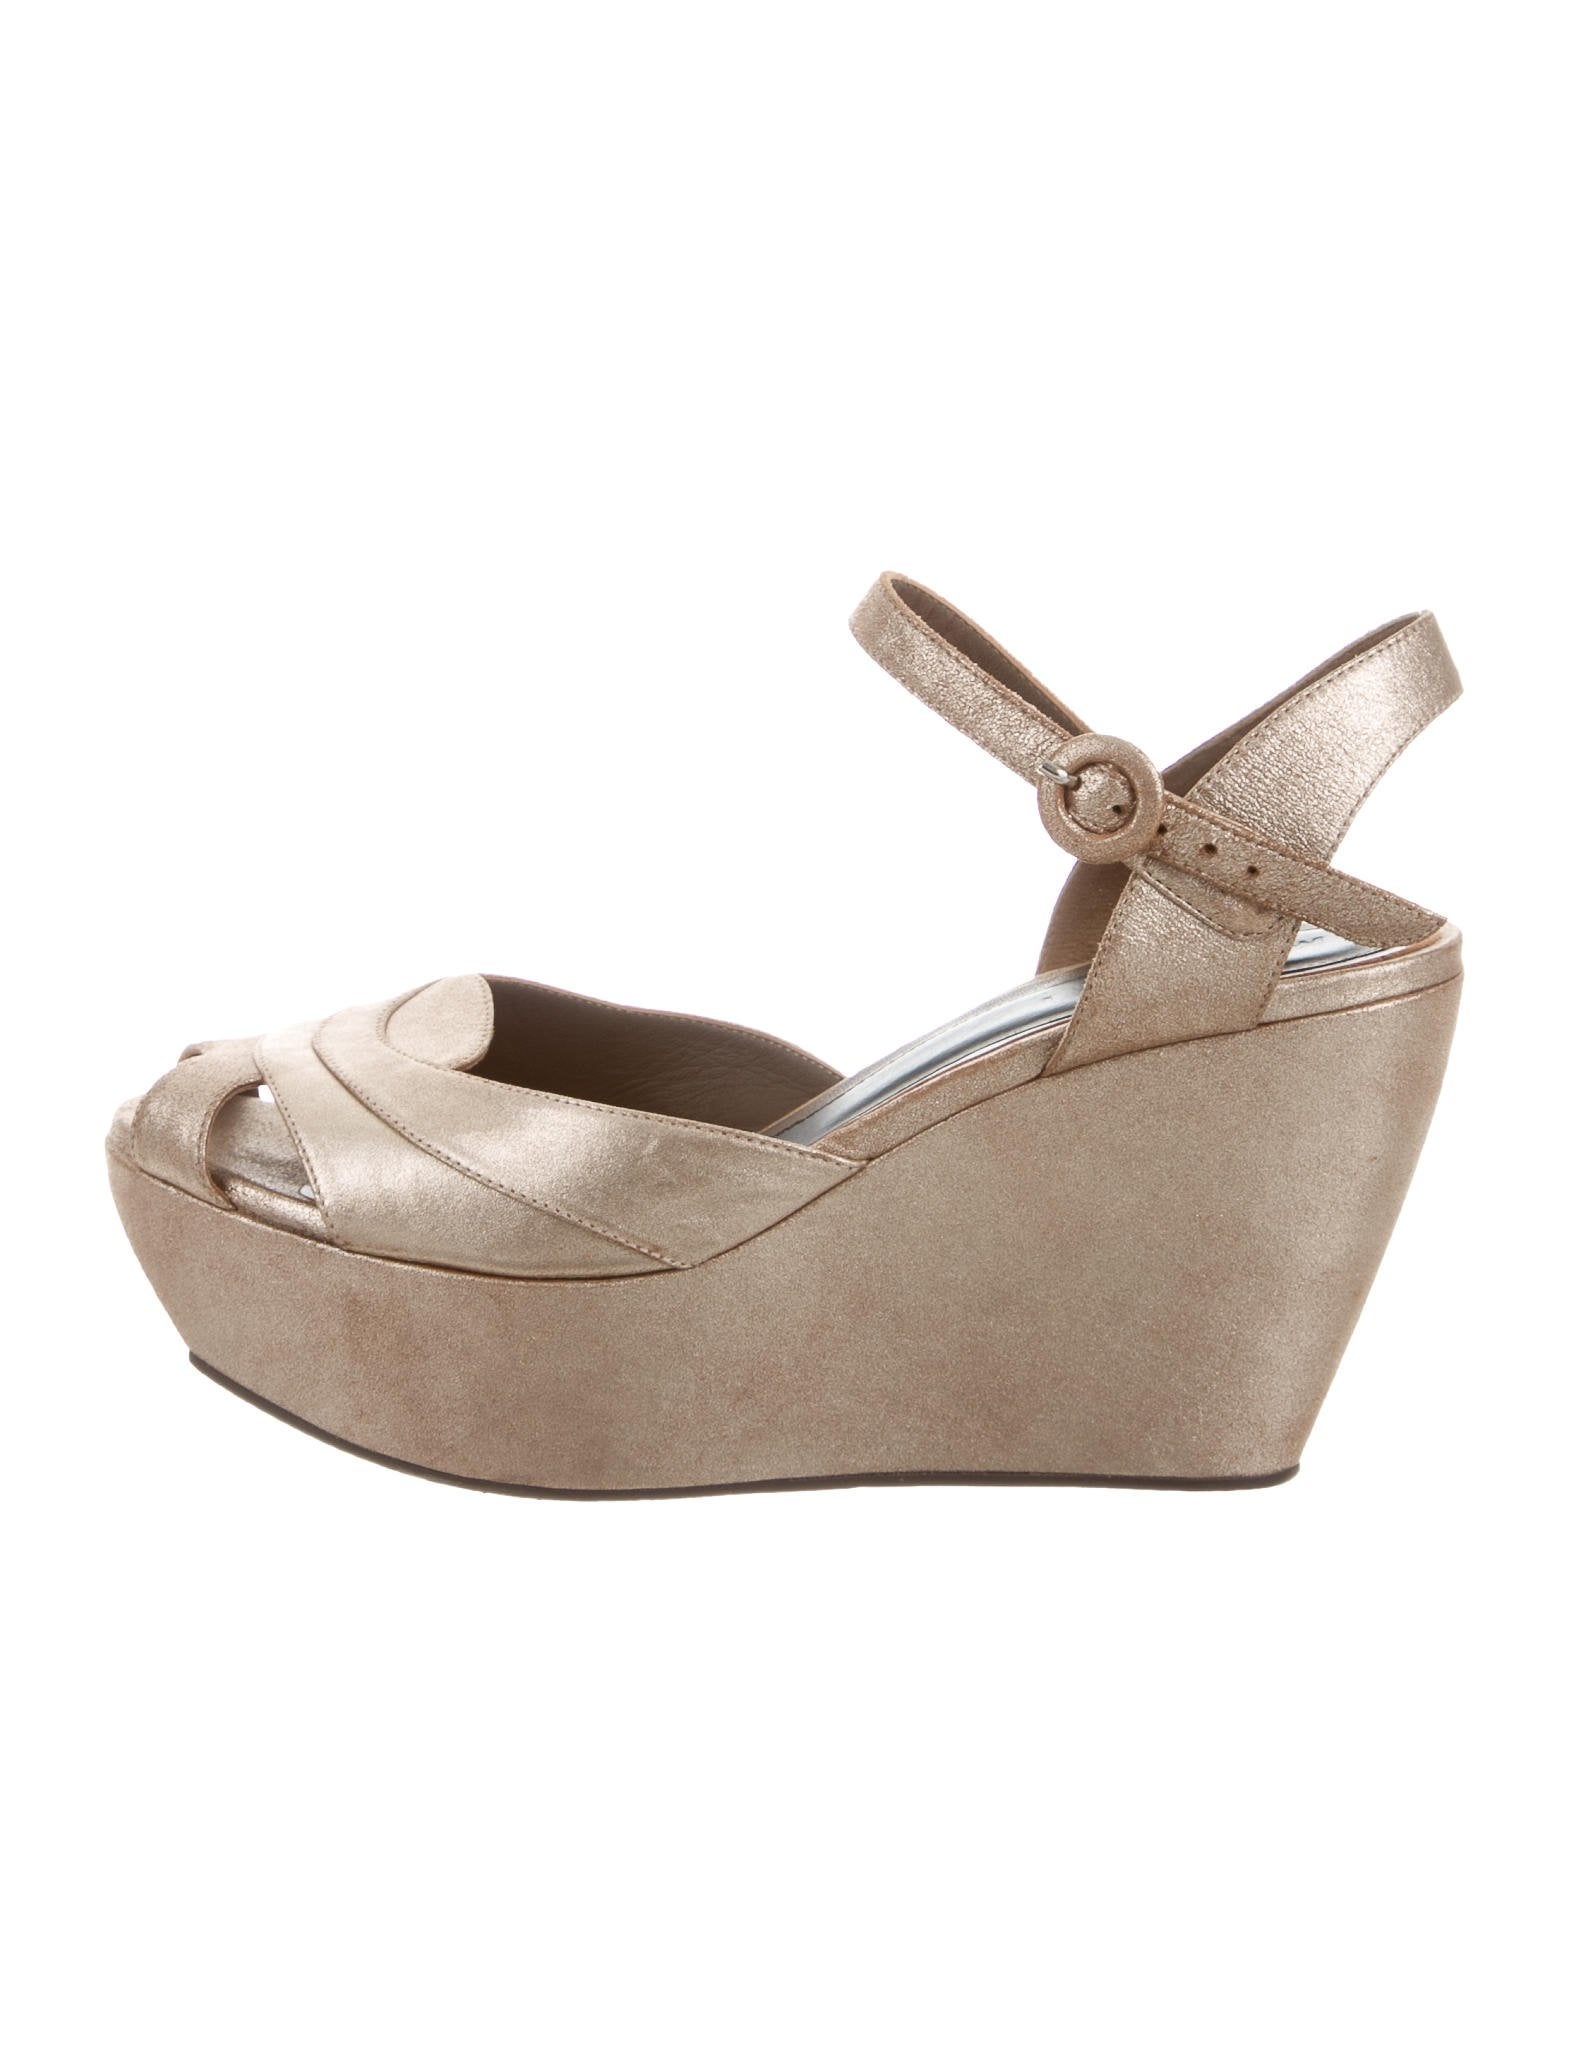 Marni Metallic Platform Sandals for sale sale online discount purchase cheap new arrival amazon online how much o2QJDVHA